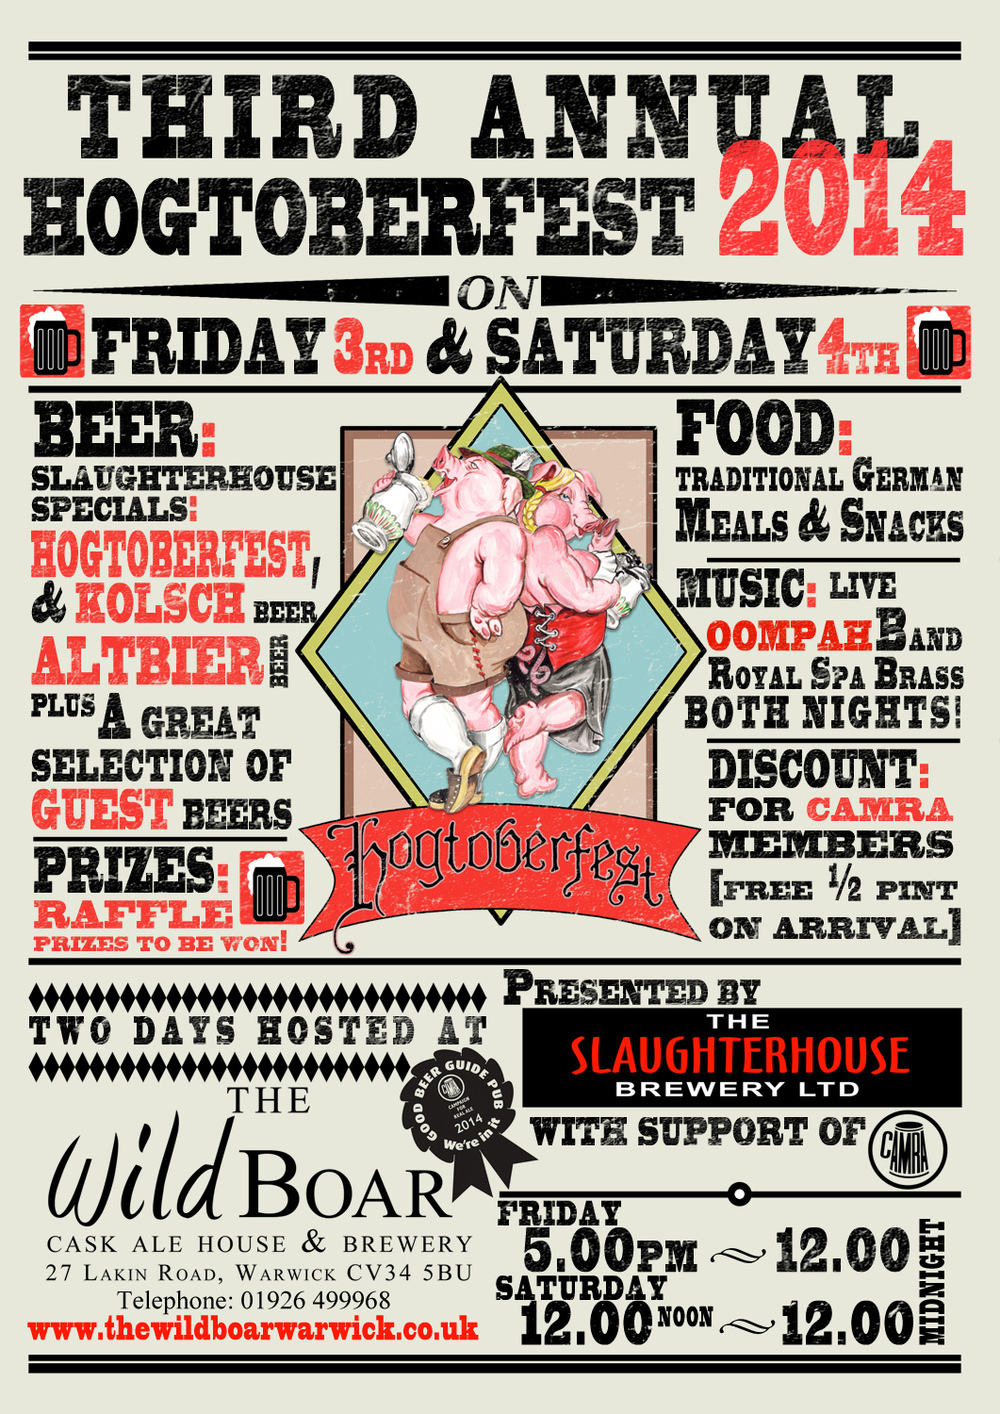 Hogfest 2014 poster